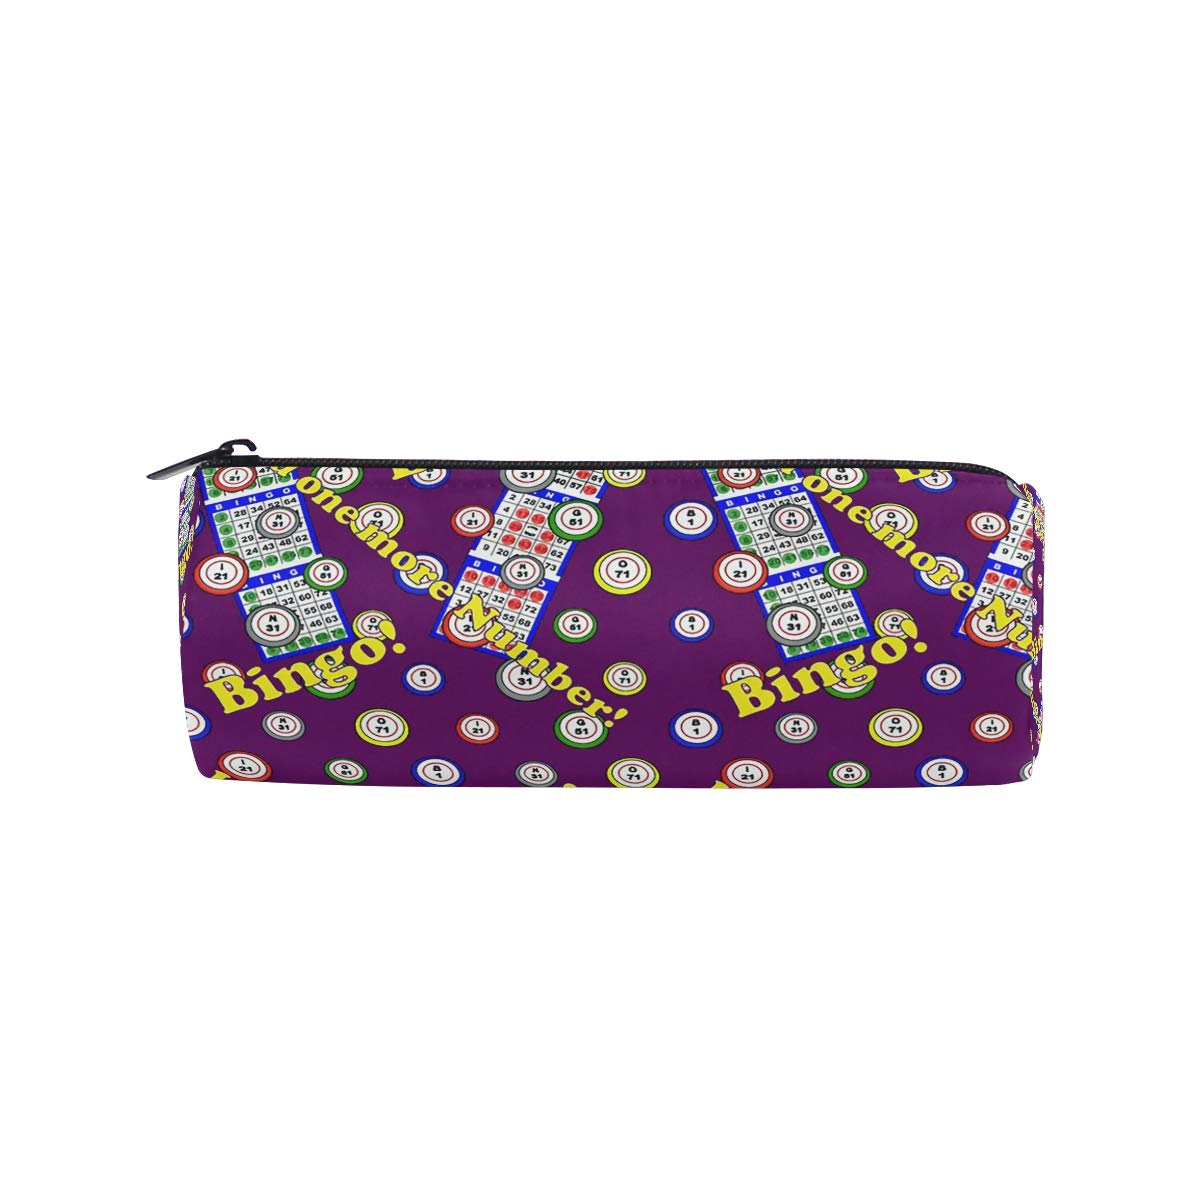 Staroklaho Bingo Pencil Pen Case Pouch Bag with Zipper for Girls Kids School Student Stationery Office Supplies